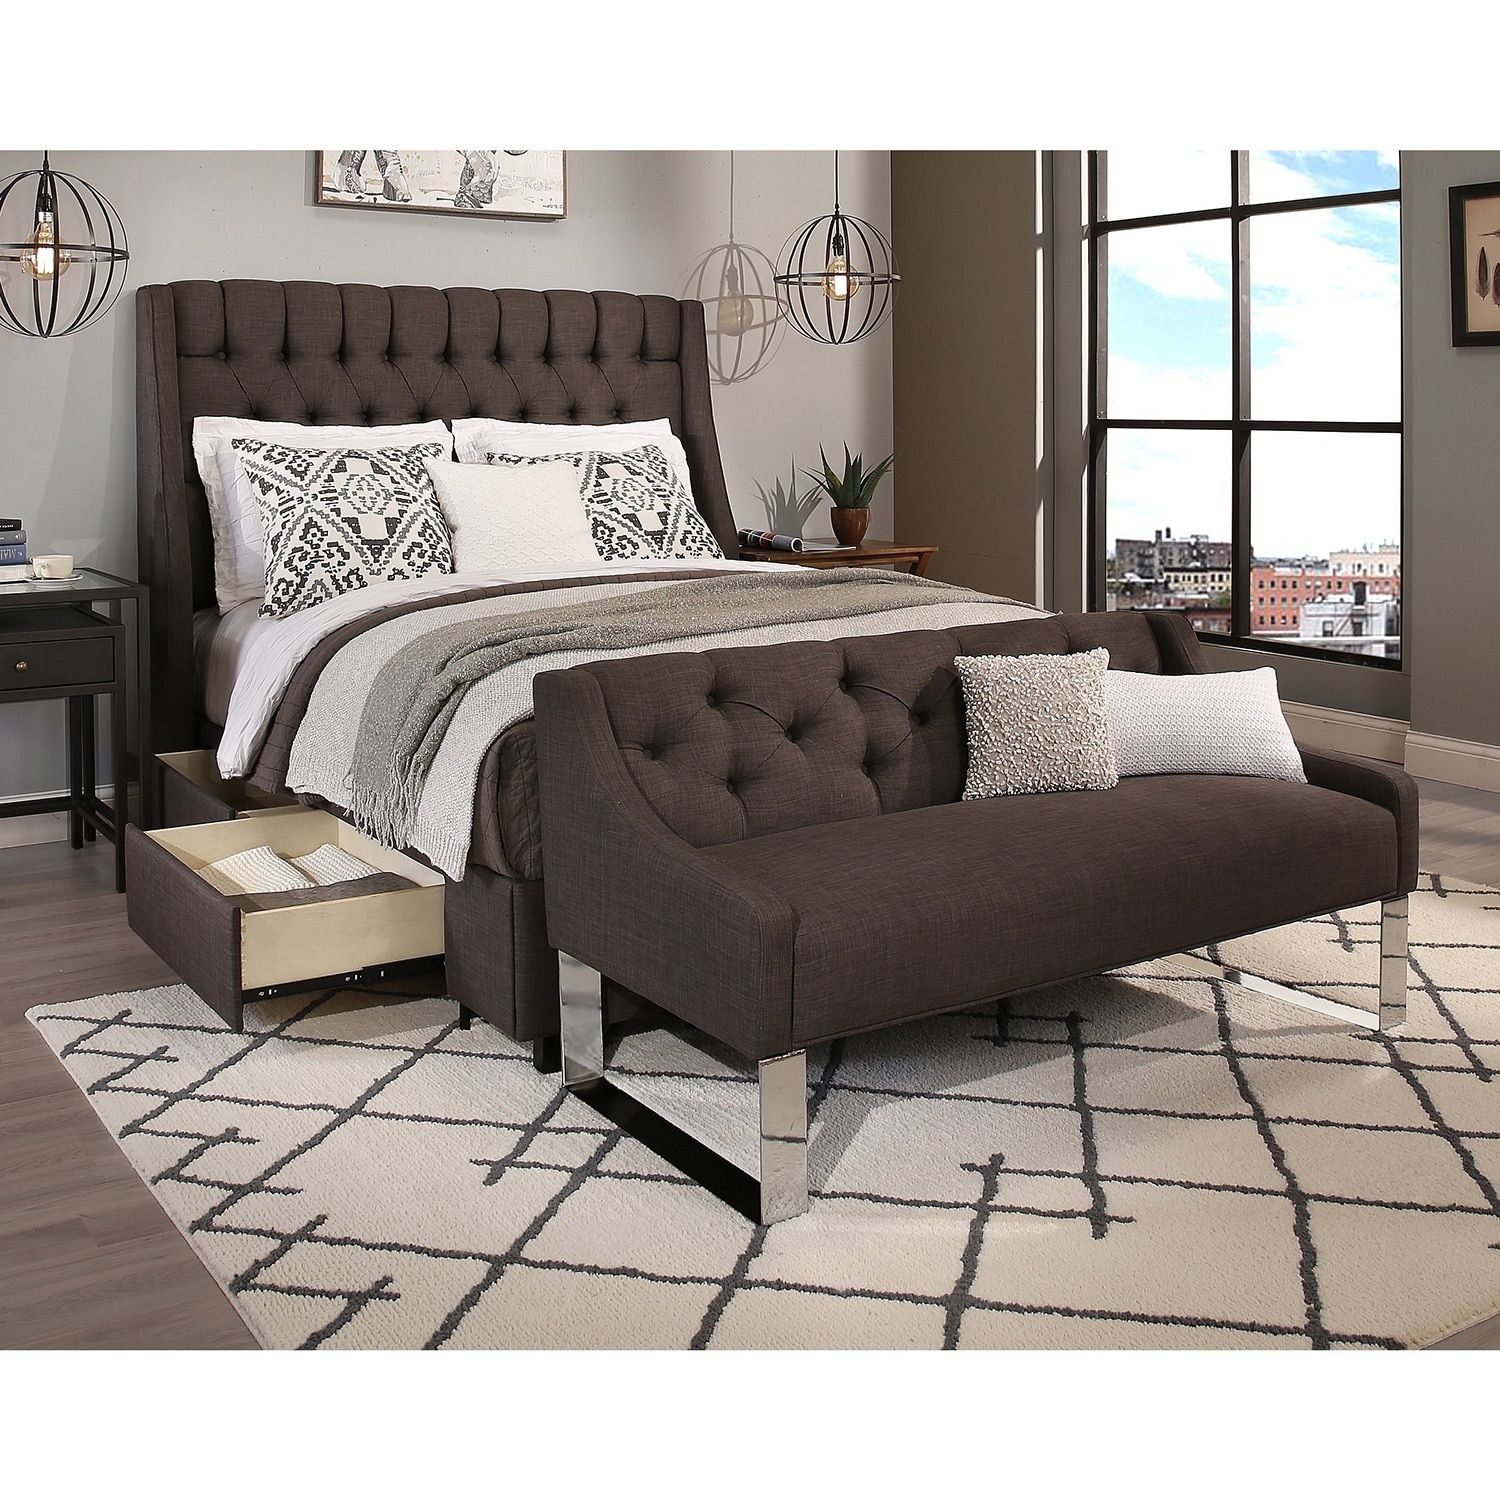 Republic Design House Cambridge Queen Size Tufted Headboard Storage Bed And Sofa Bench Set